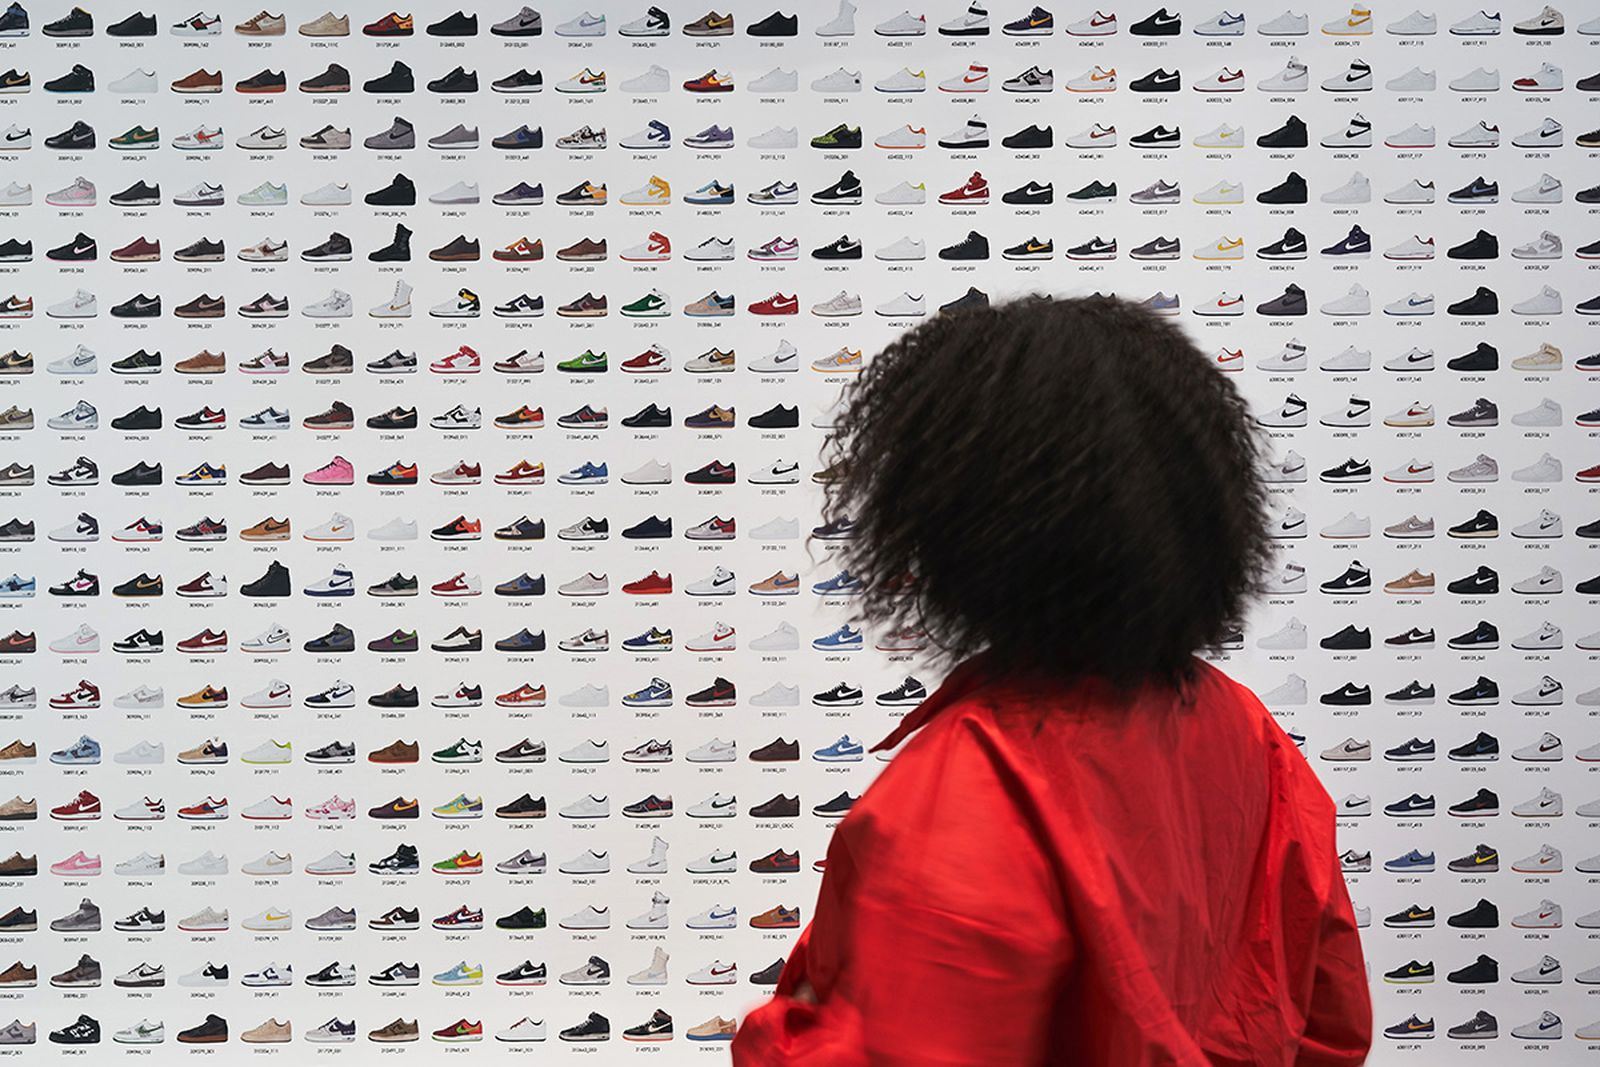 sneakers-through-the-years-22